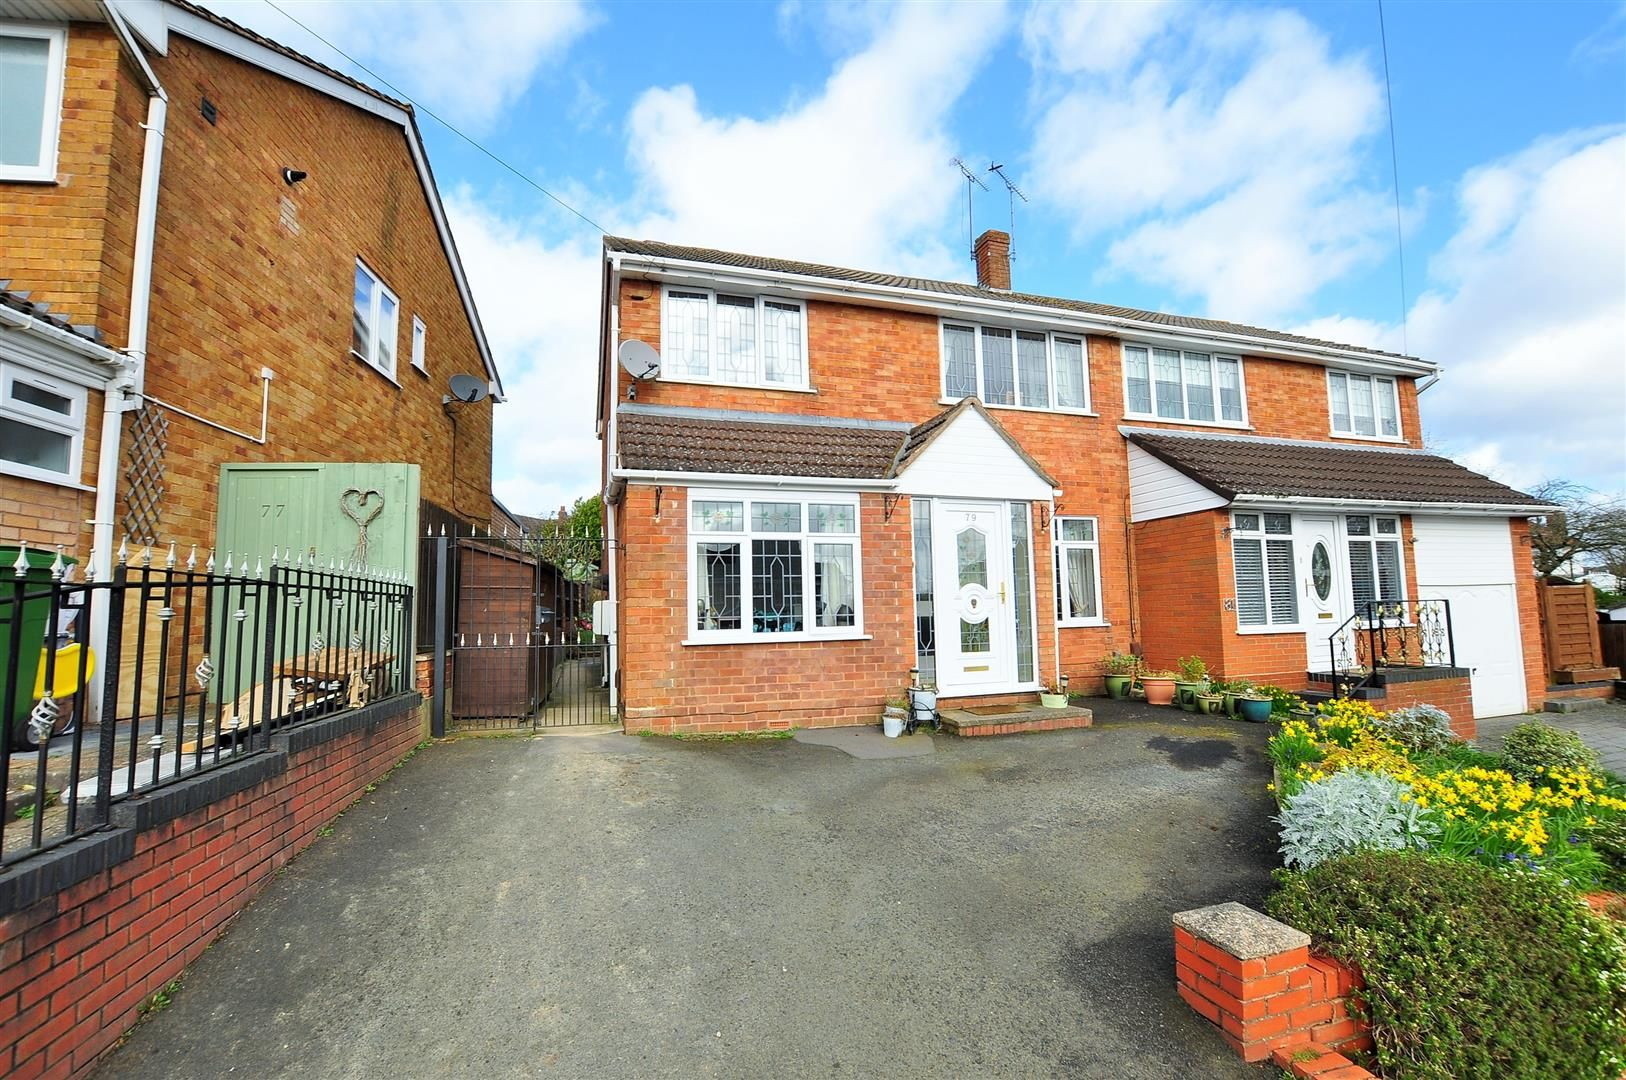 4 bed semi-detached for sale 21